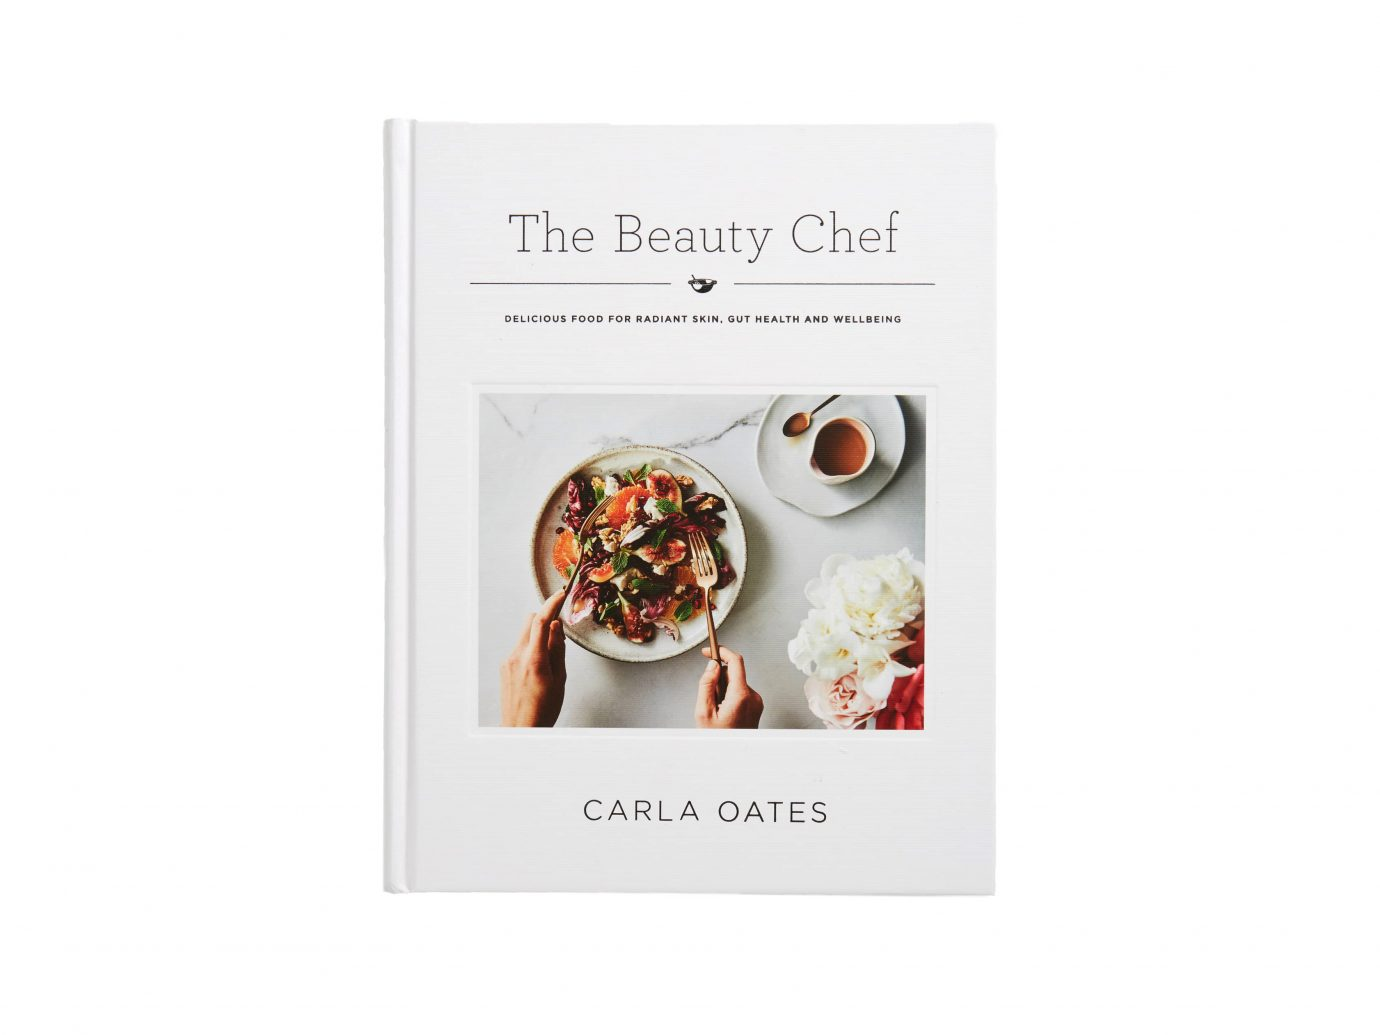 'The Beauty Chef: Delicious Food for Radiant Skin, Gut Health and Wellbeing' Cookbook